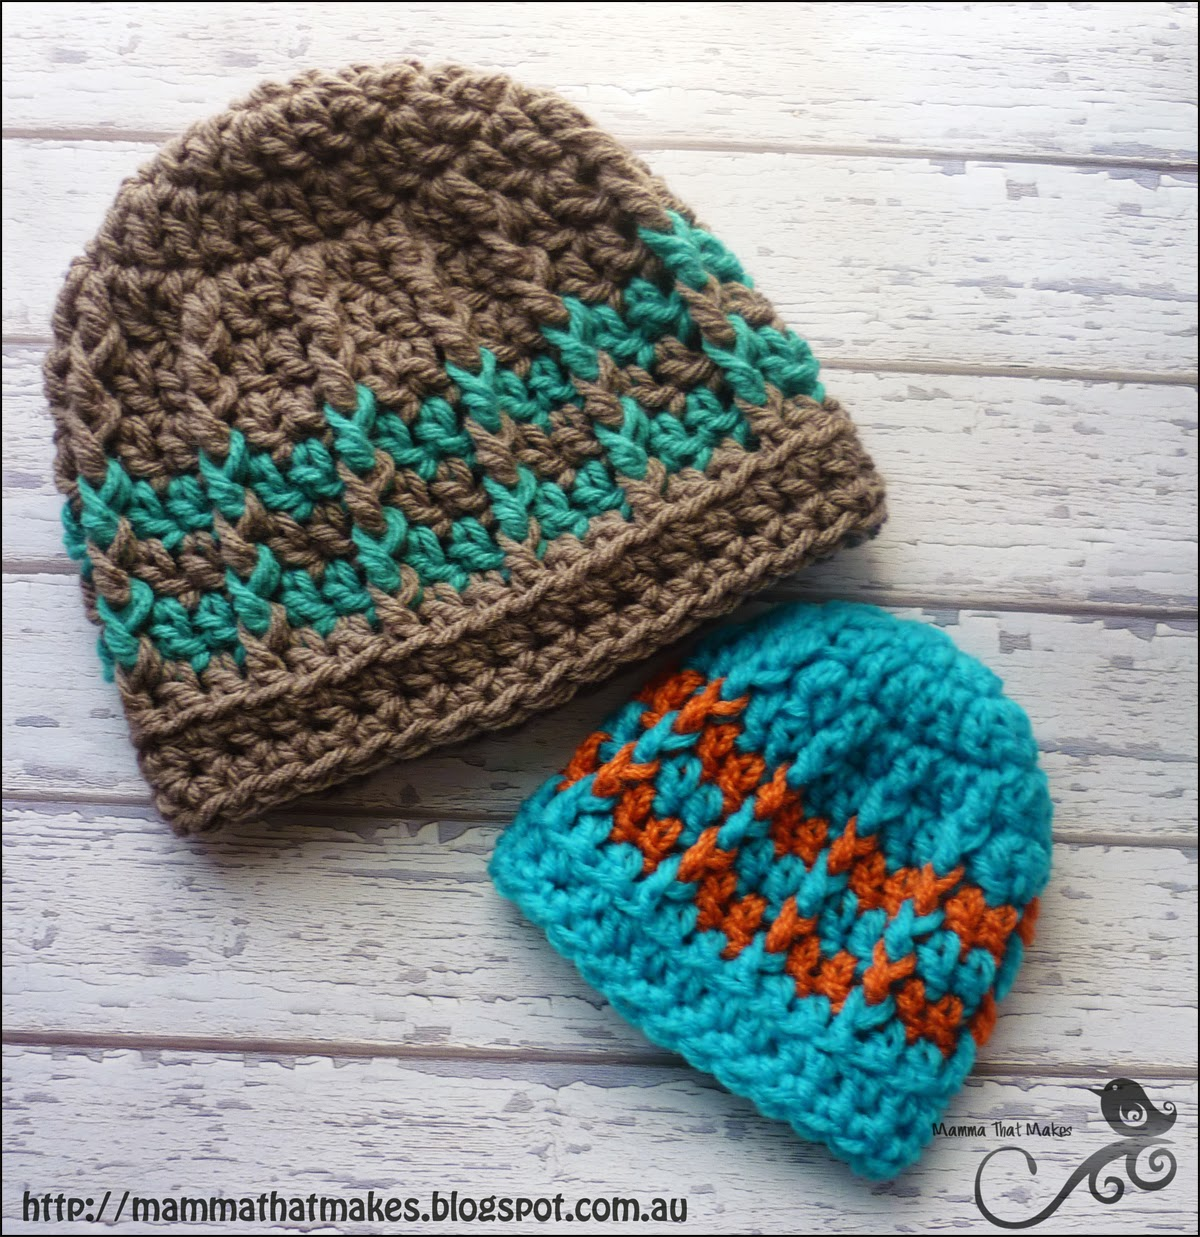 Mamma That Makes: Michael Beanie - Free Crochet Pattern